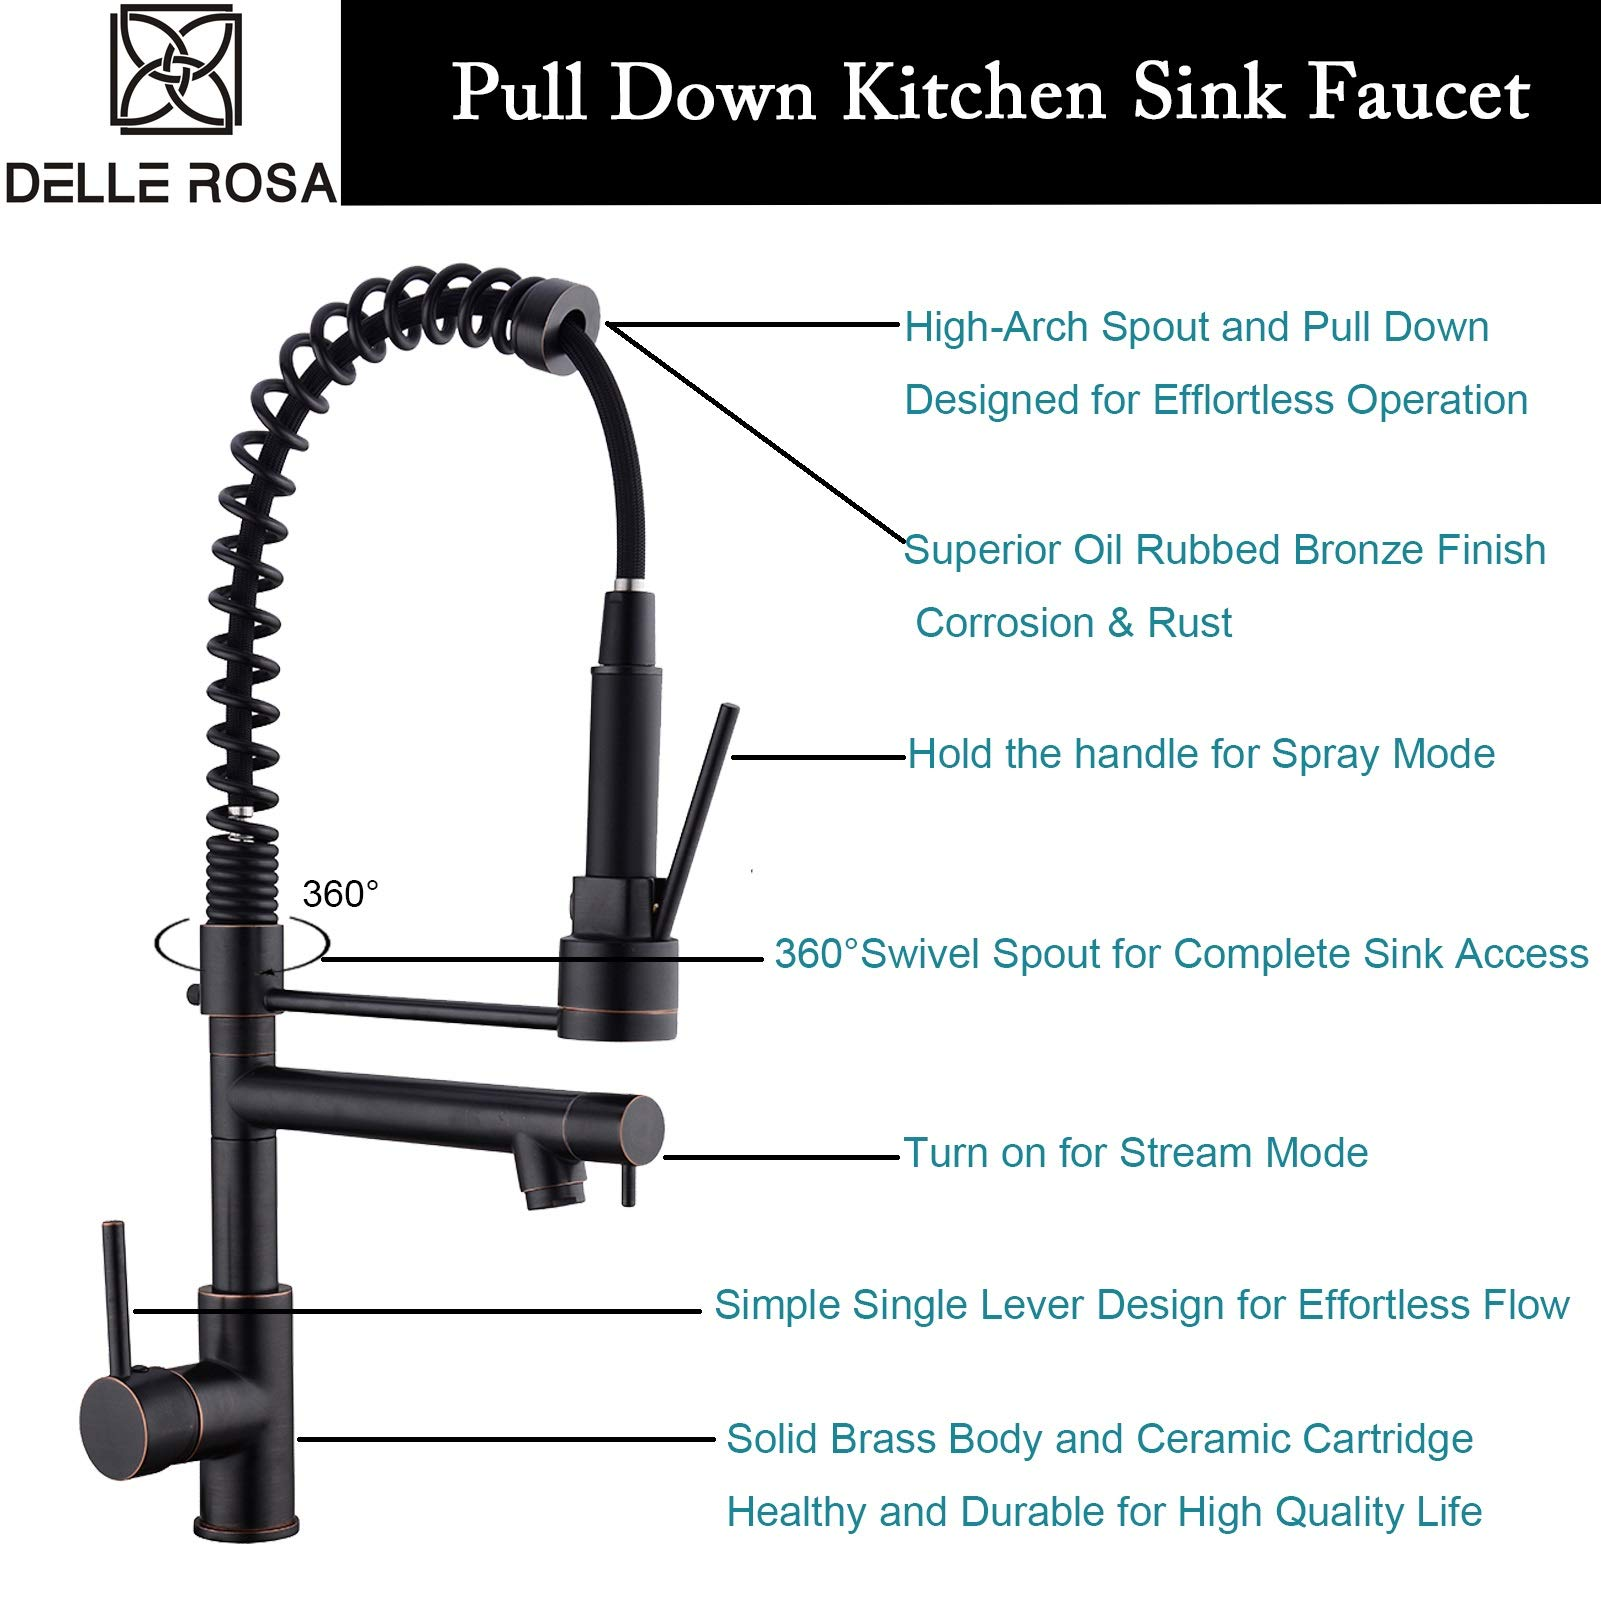 Commercial Kitchen Faucet Oil Rubbed Bronze Delle Rosa Modern Single Handle High Arch Spring Pre-rinse Farm Kitchen Sink Faucets by Delle Rosa (Image #2)